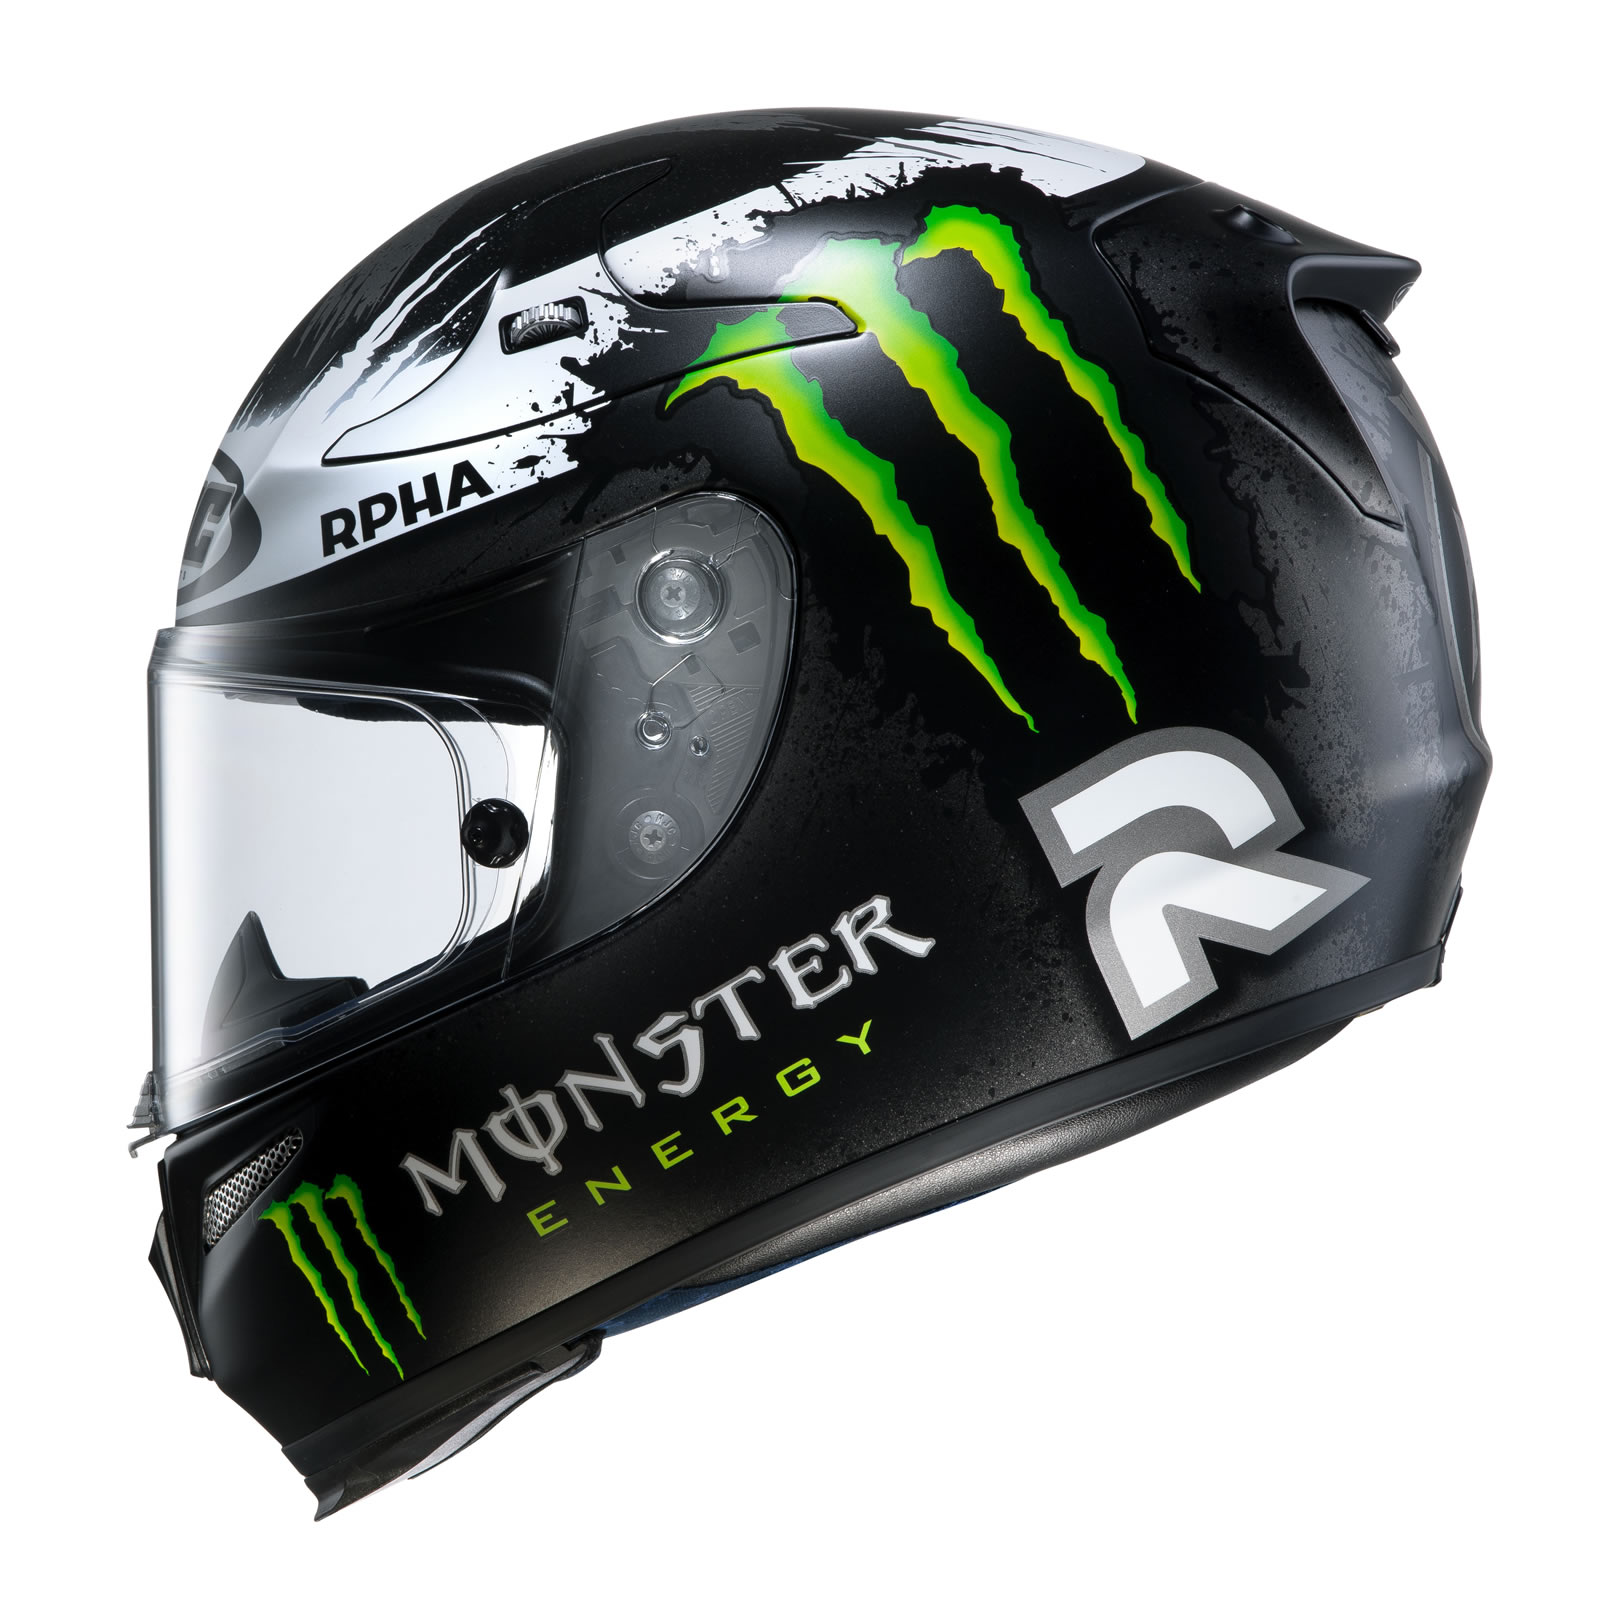 hjc rpha 10 lorenzo replica ghost fuera noir casque de moto monster energy ebay. Black Bedroom Furniture Sets. Home Design Ideas